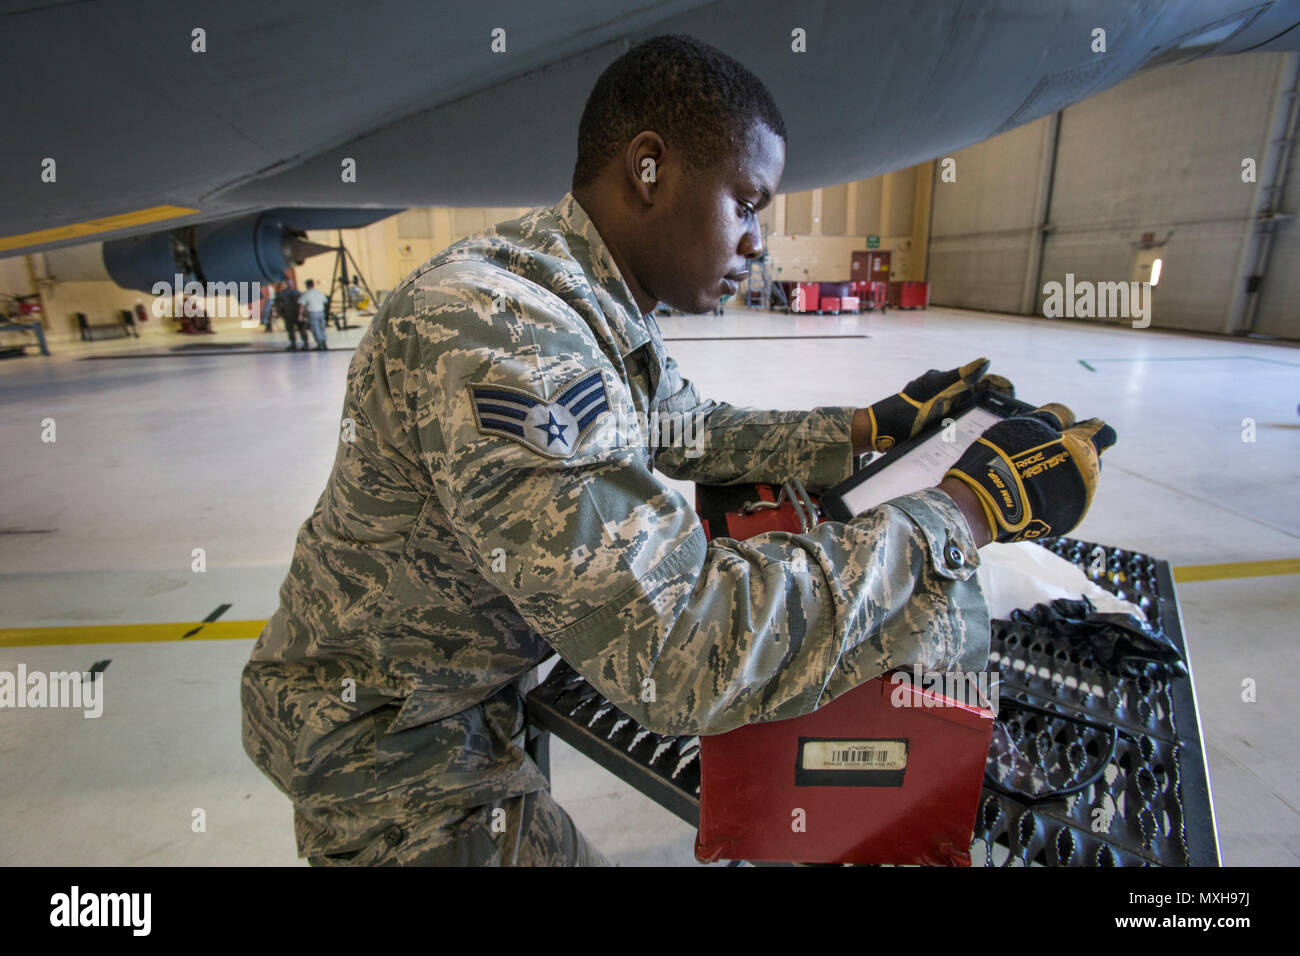 Senior Airman Andy Amakihe, KC-135R Stratotanker Crew Chief, 108th Wing, New Jersey Air National Guard, reviews a technical order prior to lowering the refueling boom for inspection at Joint Base McGuire-Dix-Lakehurst, N.J., Nov. 5, 2016. (U.S. Air National Guard photo by Master Sgt. Mark C. Olsen/Released) - Stock Image